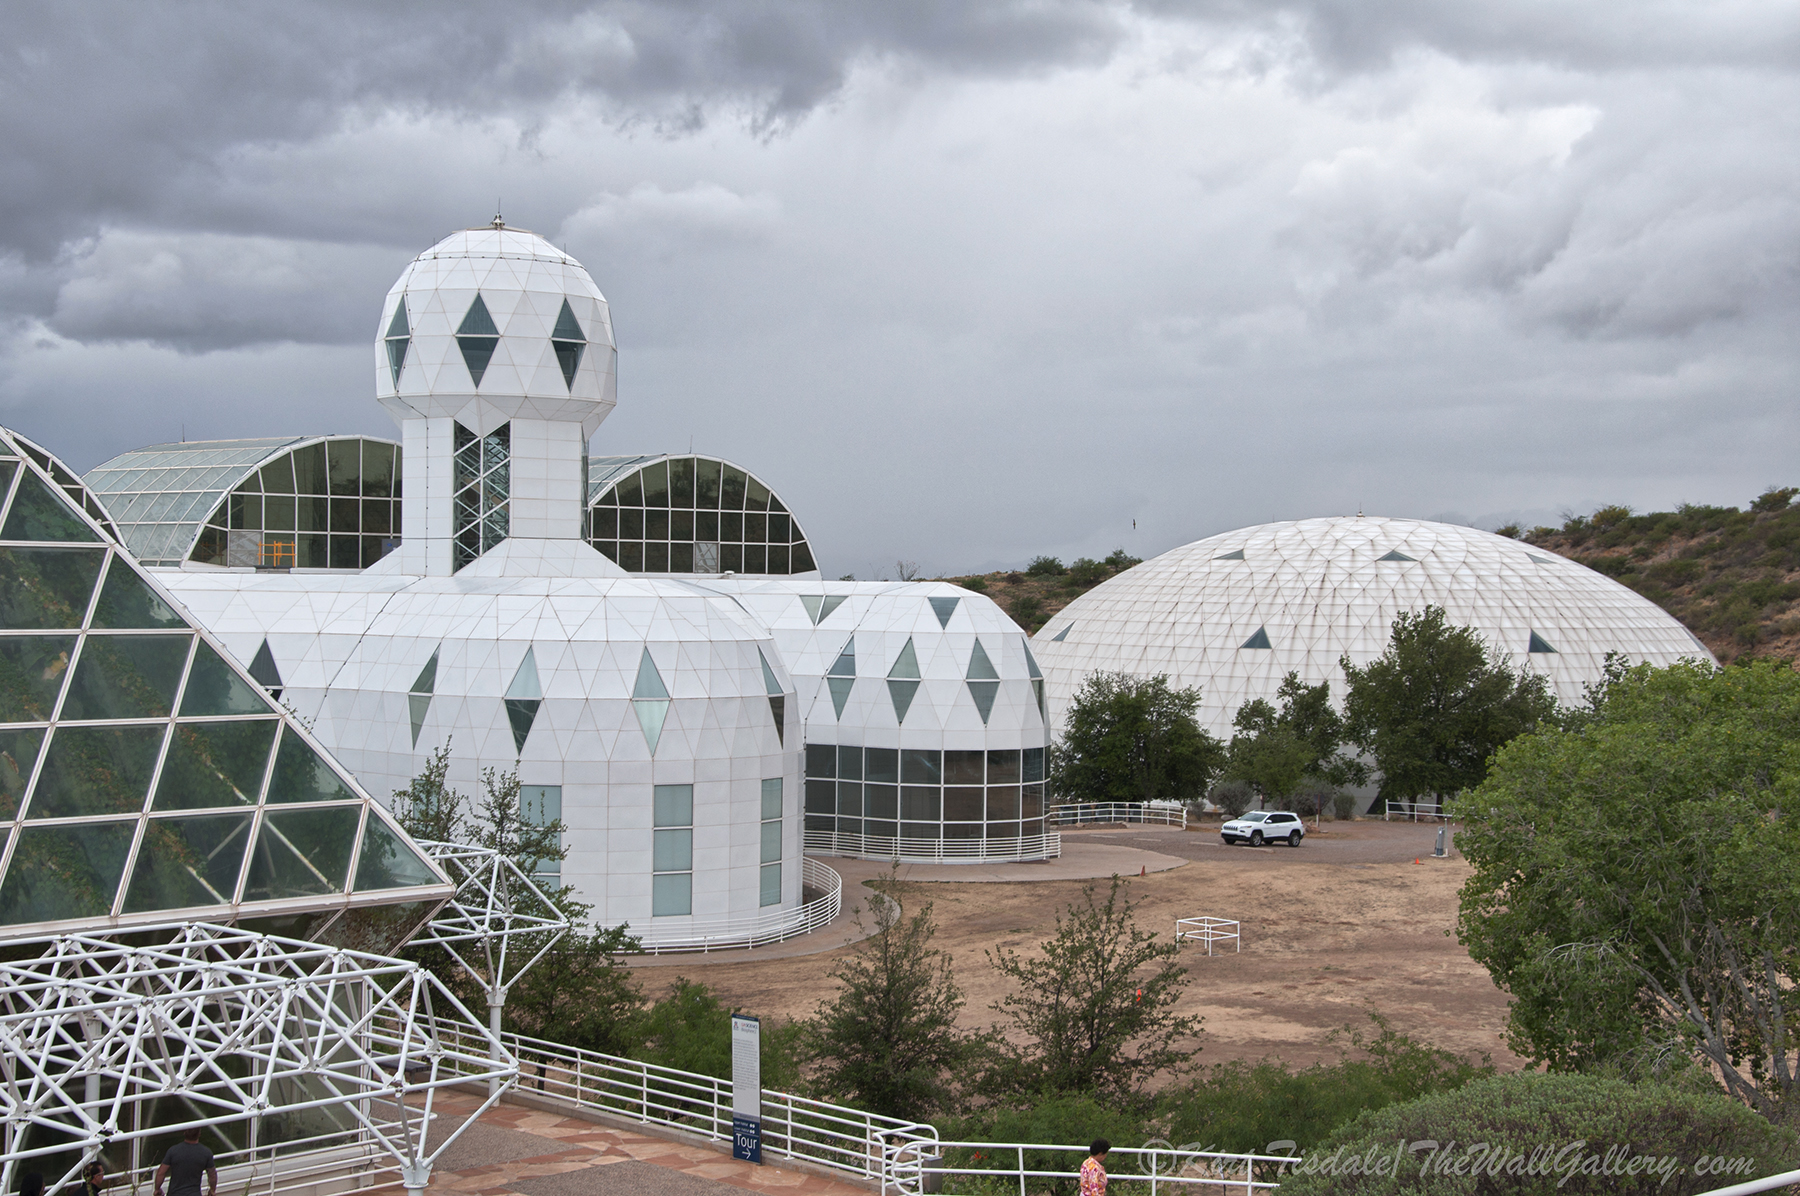 biosphere 2 u2013 excerpts from a photo shoot thewallgalleryblog